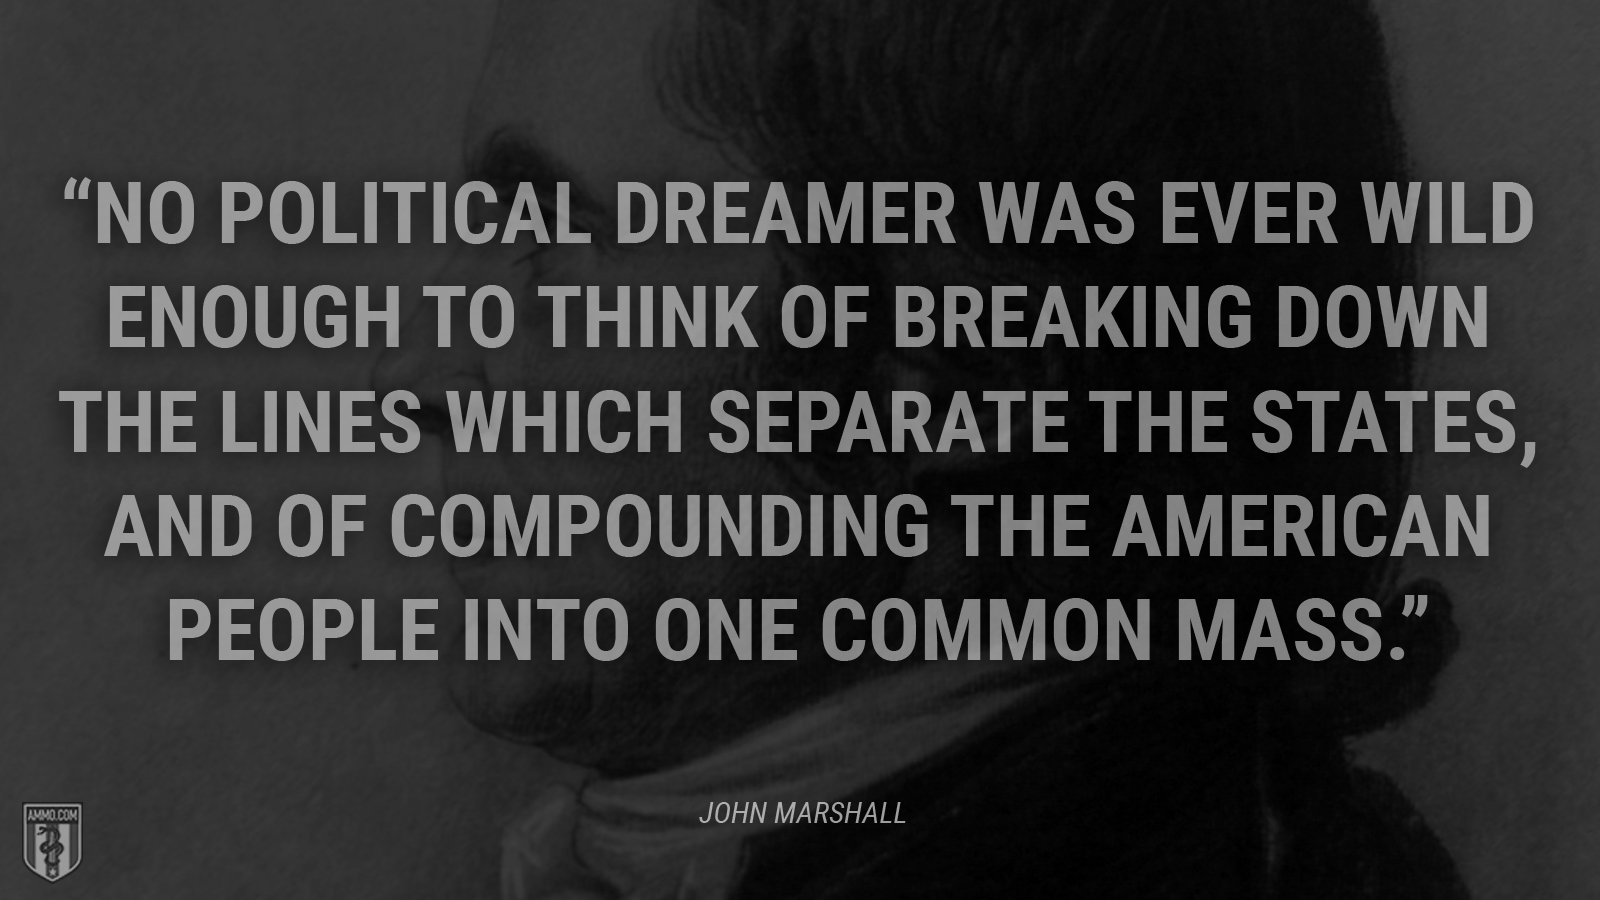 """No political dreamer was ever wild enough to think of breaking down the lines which separate the States, and of compounding the American people into one common mass."" - John Marshall"